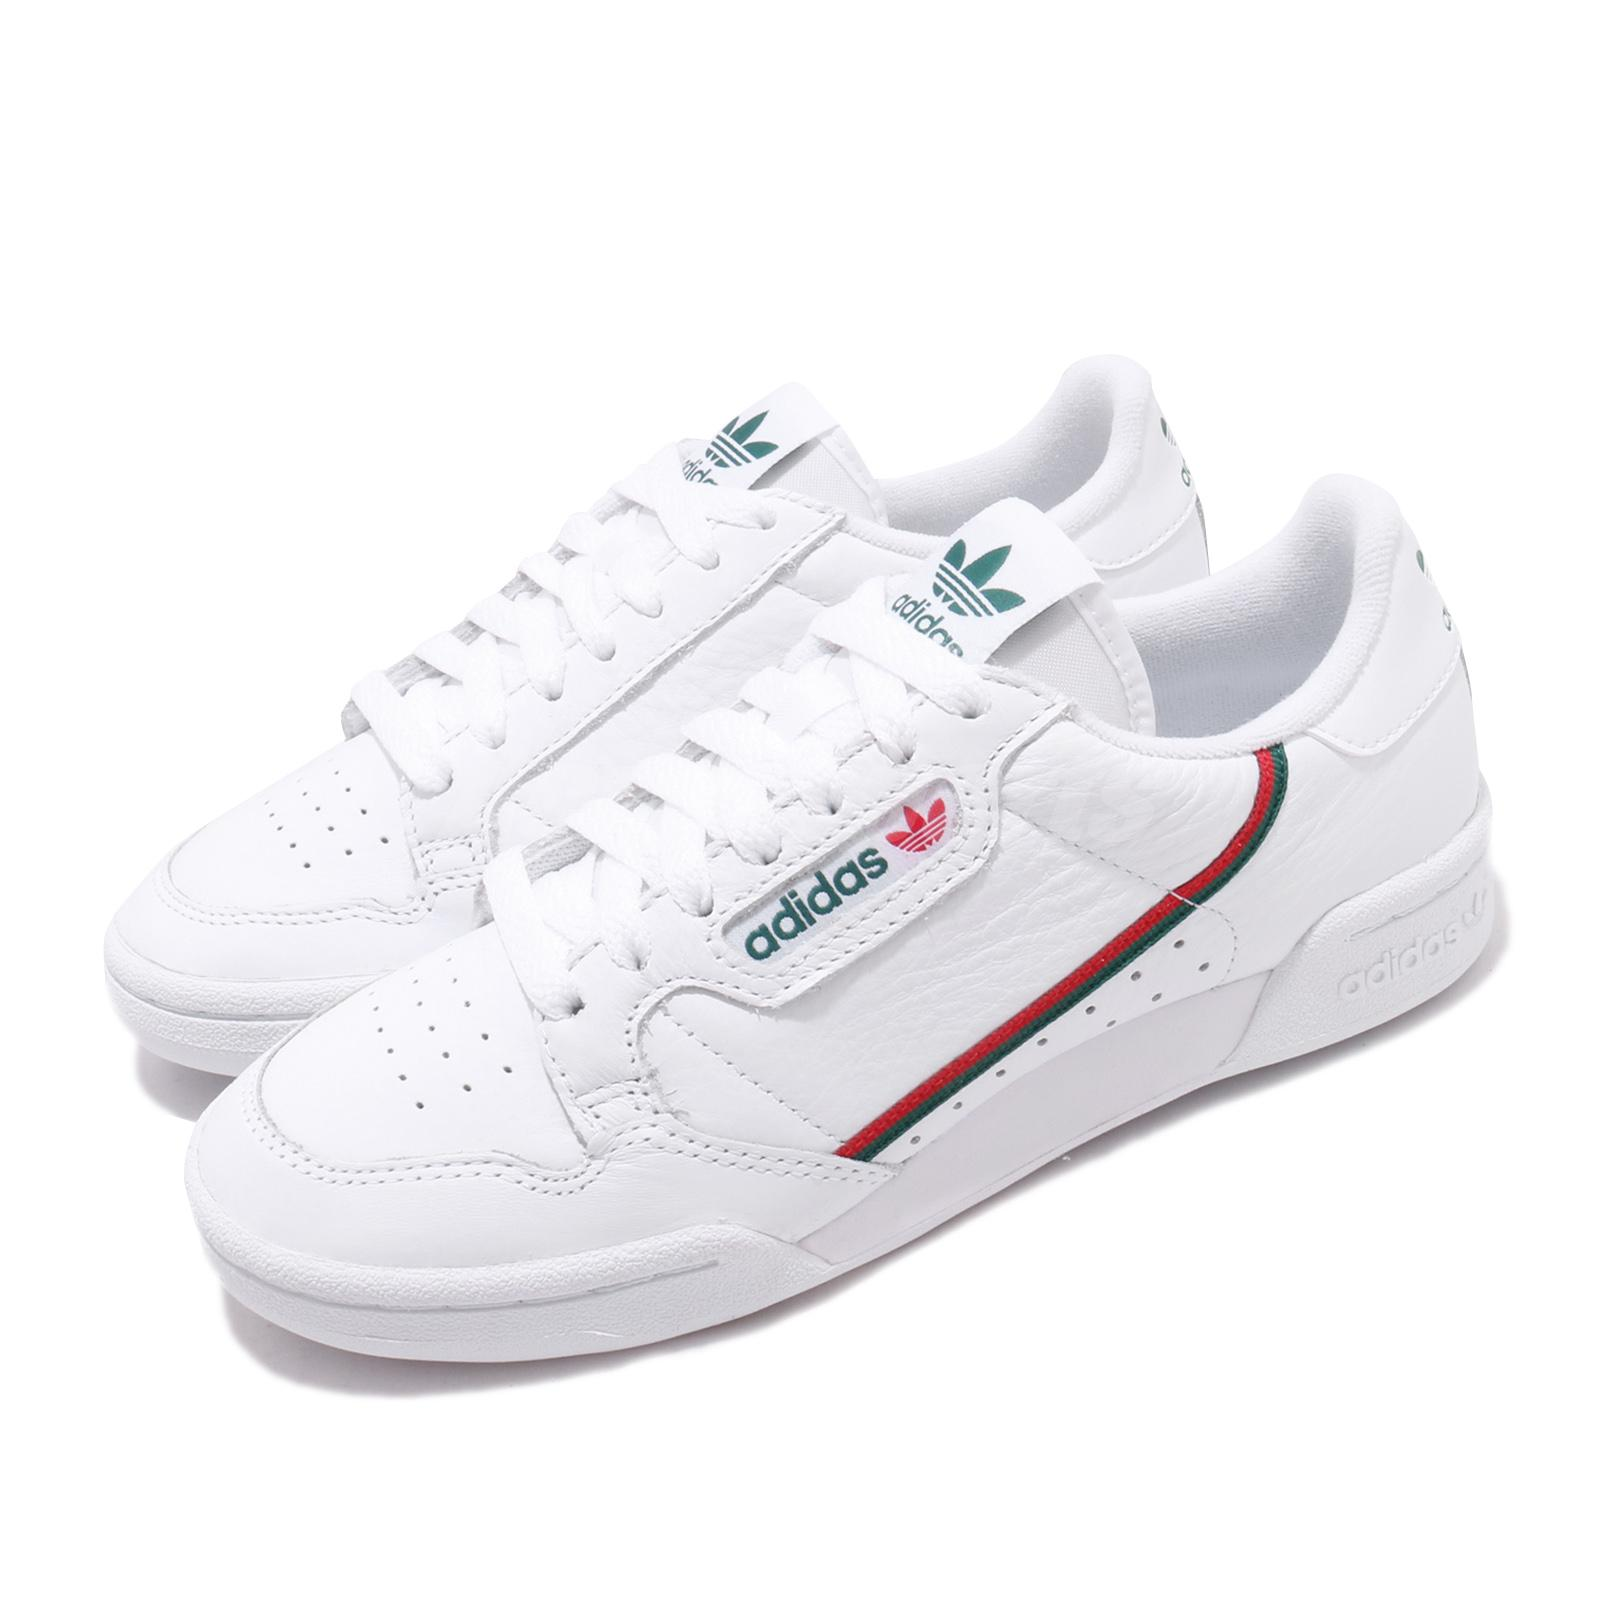 Details about adidas Originals Continental 80 White Green Red Men Women  Casual Shoes EG4592